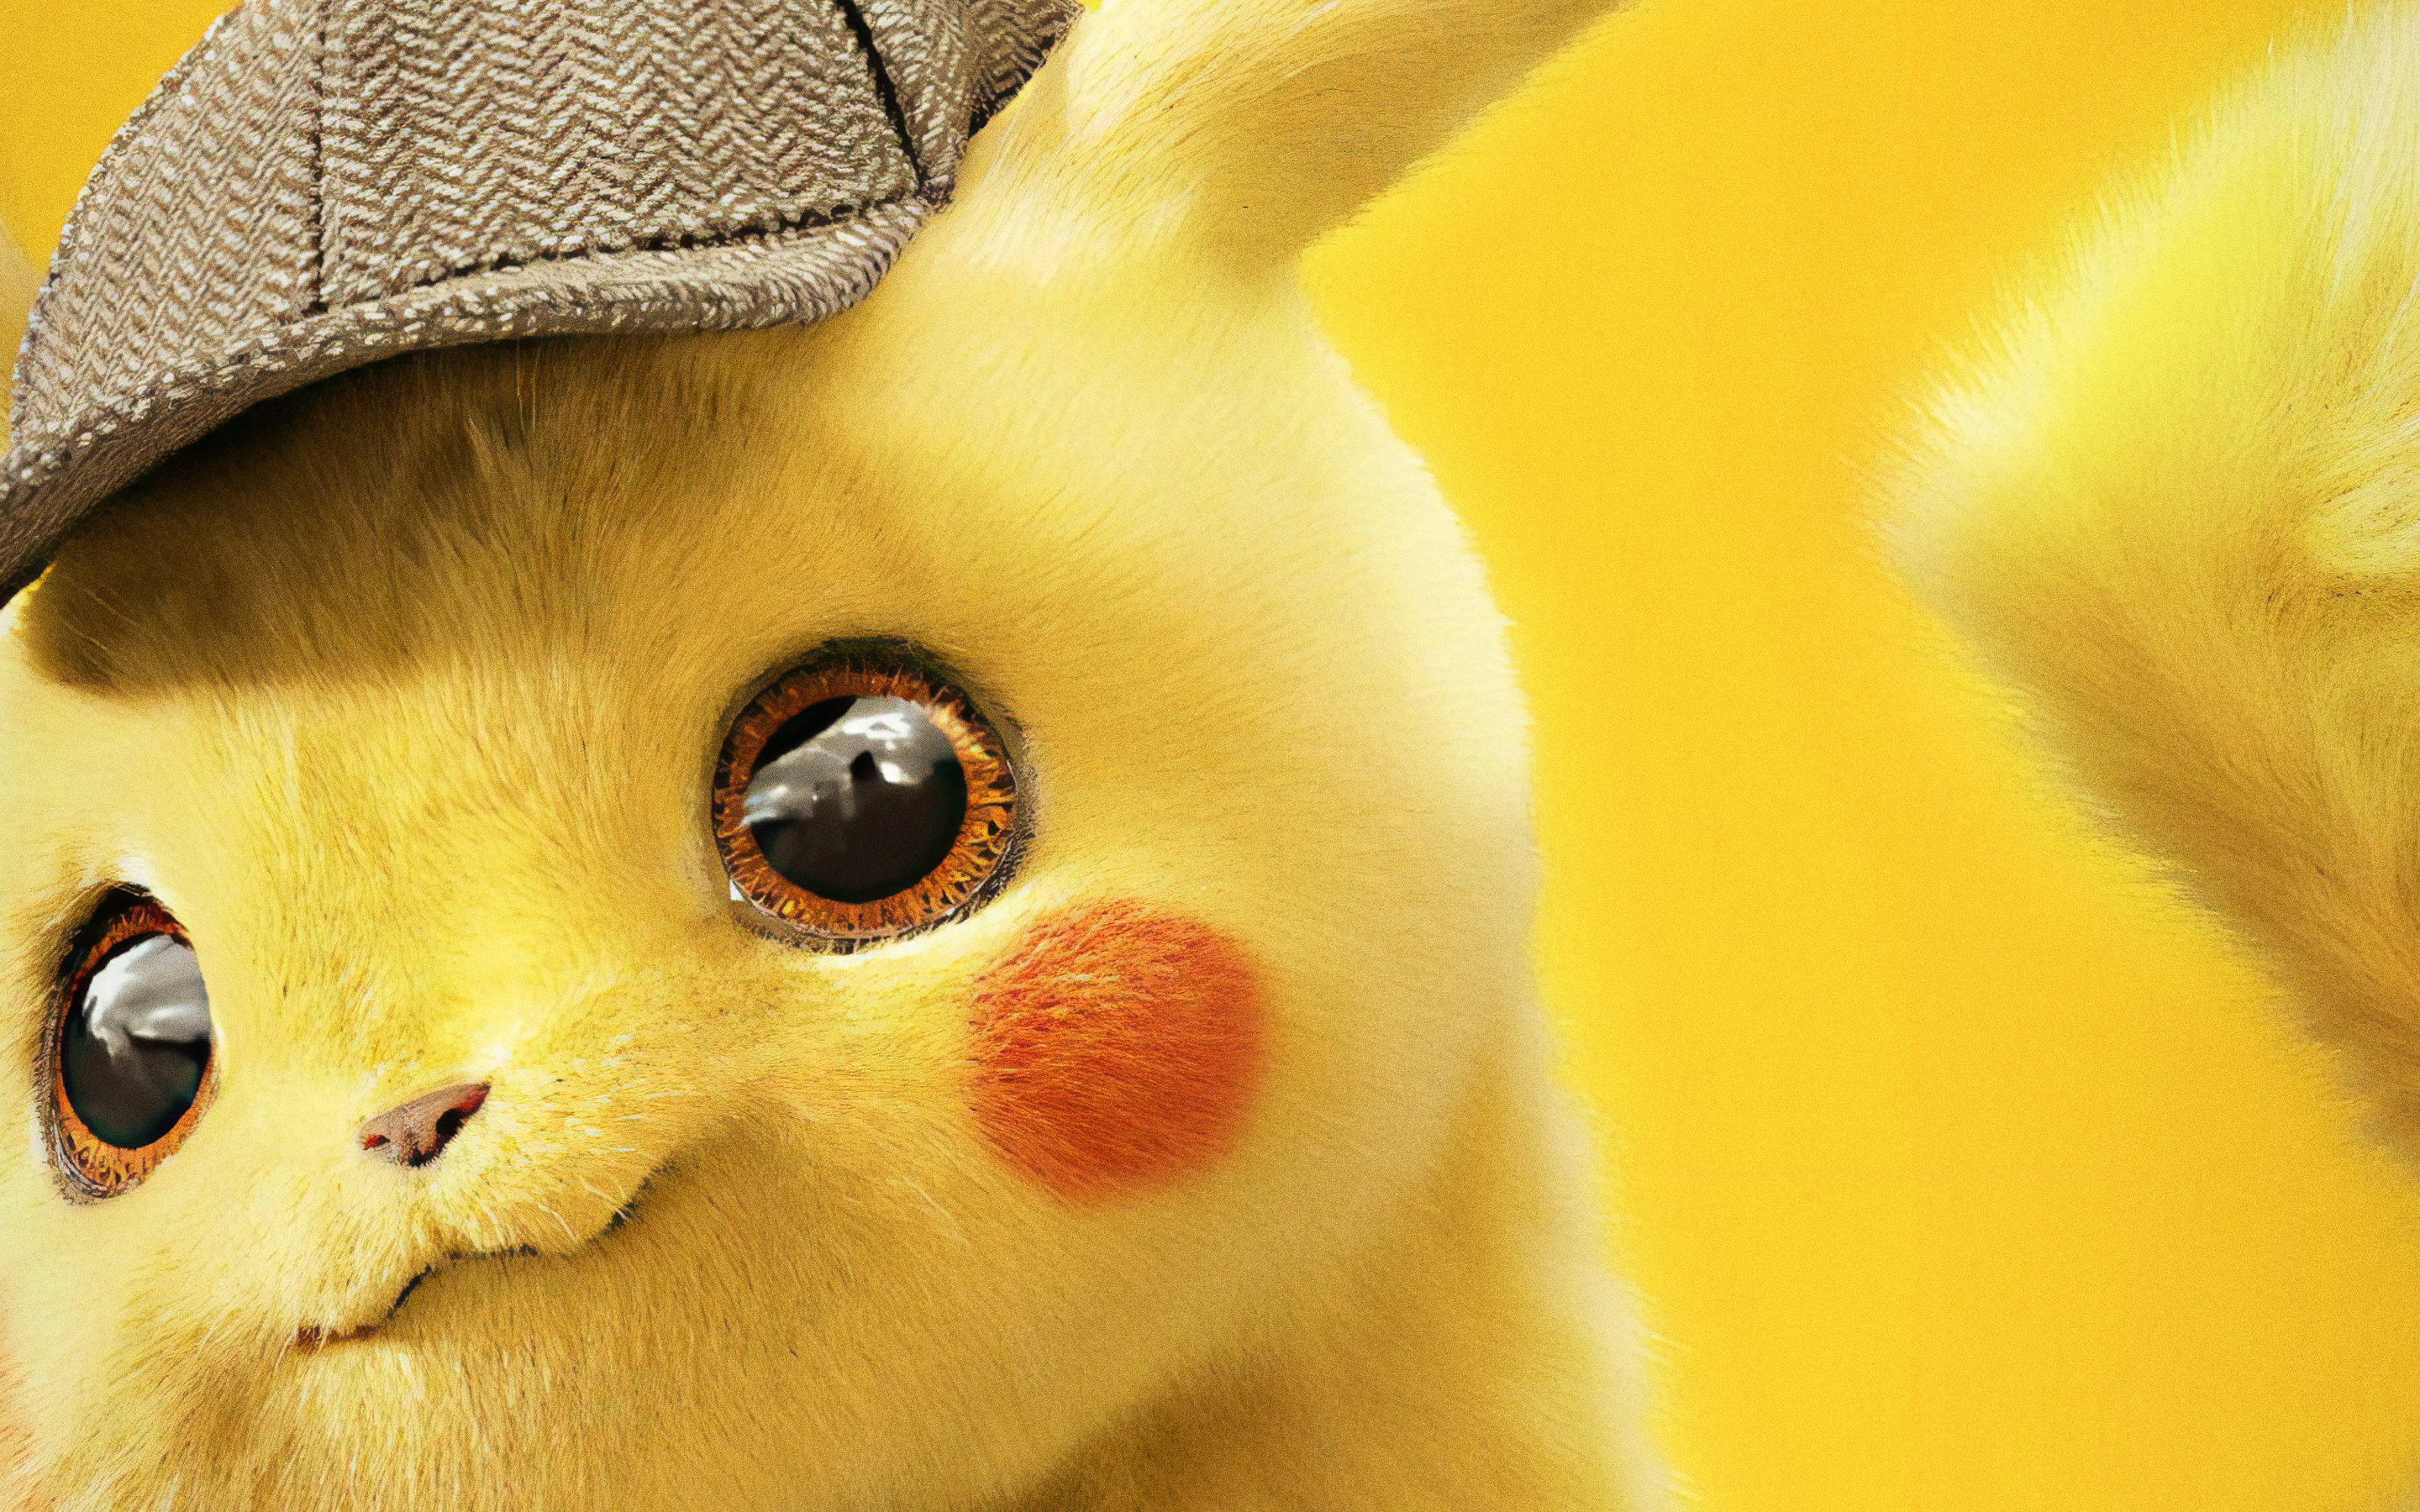 2880x1800 Pokemon Detective Pikachu 4k 2019 Macbook Pro